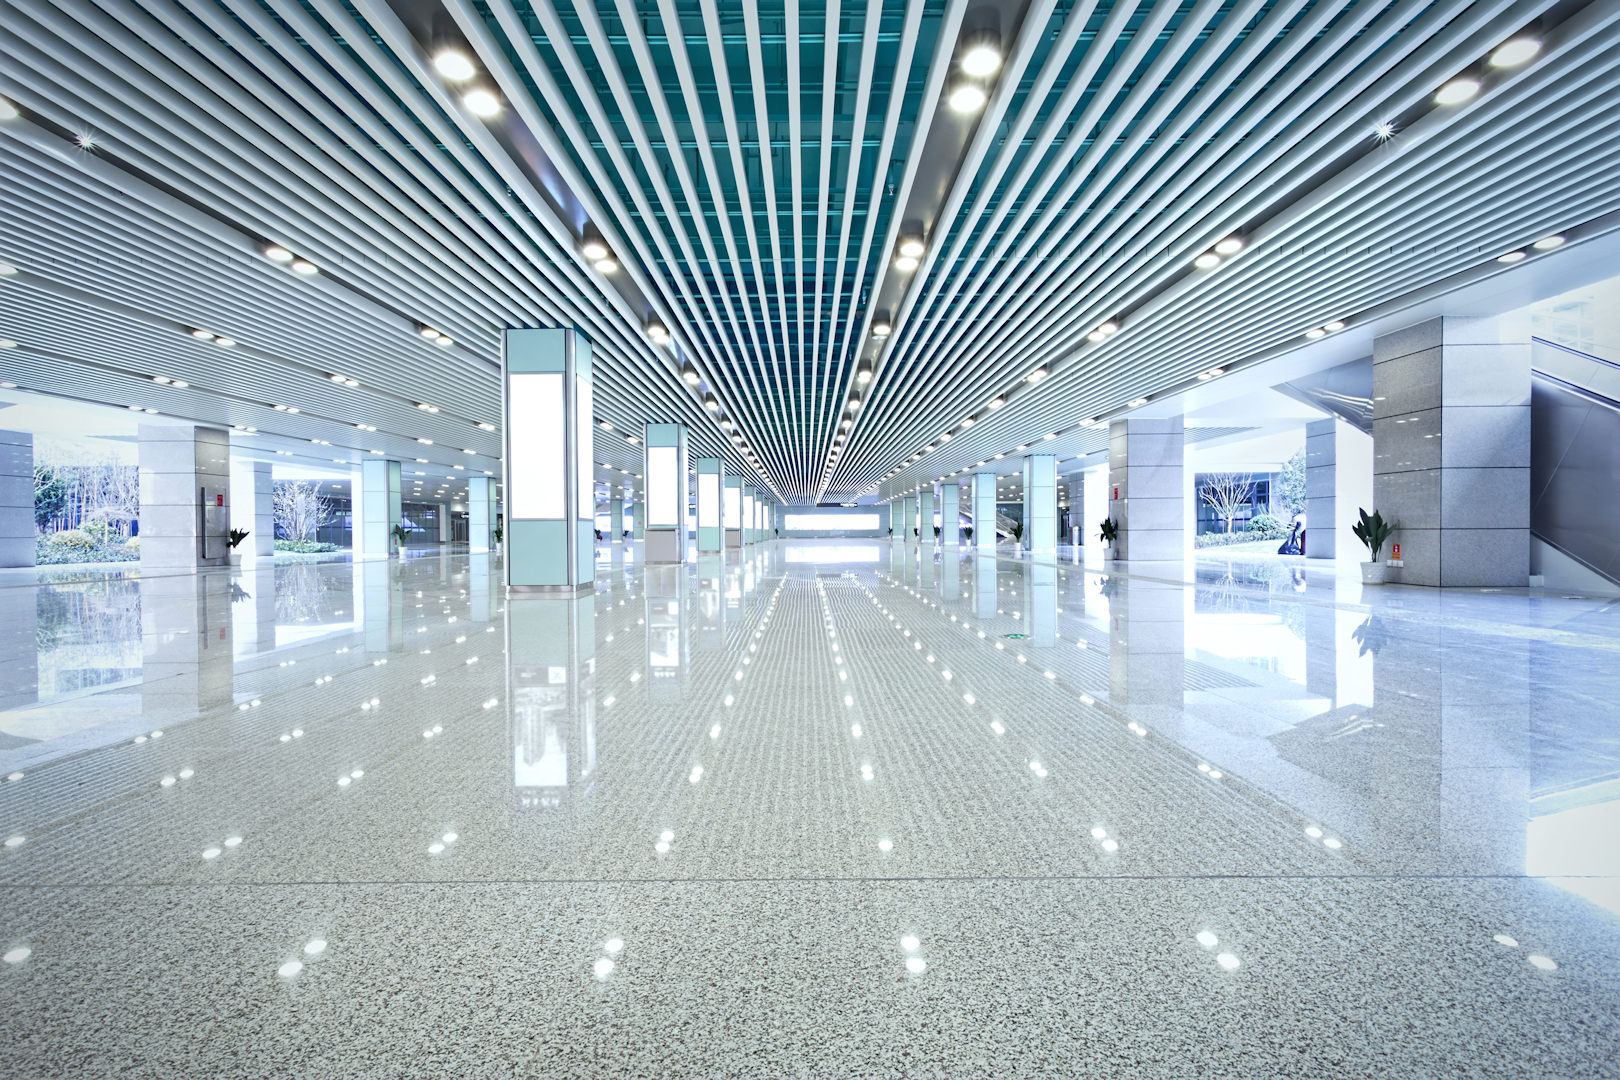 micron-group-commercial-led-lighting-maintenance-and-installation